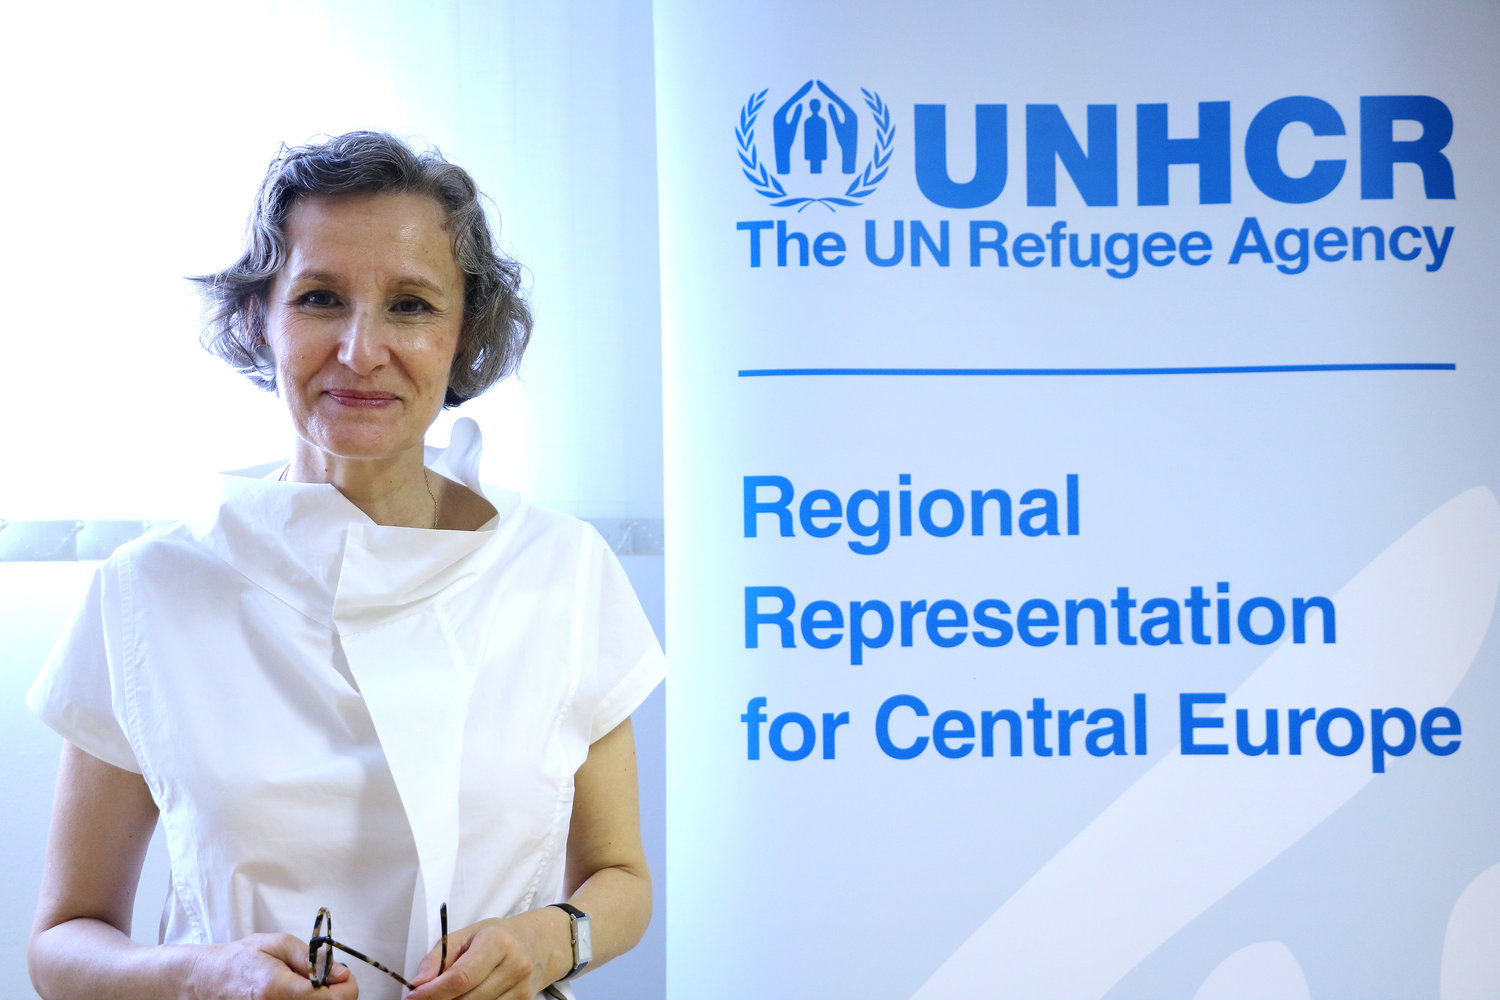 Montserrat Feixas Vihé, UNHCR's Regional Representative based in Budapest since July 2013. She is responsible for the overall formulation, coordination and management of UNHCR's operations in Bulgaria, Croatia, the Czech Republic, Hungary, Moldova, Poland, Romania, Slovakia and Slovenia, and she leads the policy dialogue and advocacy on refugee issues and statelessness with these Governments.